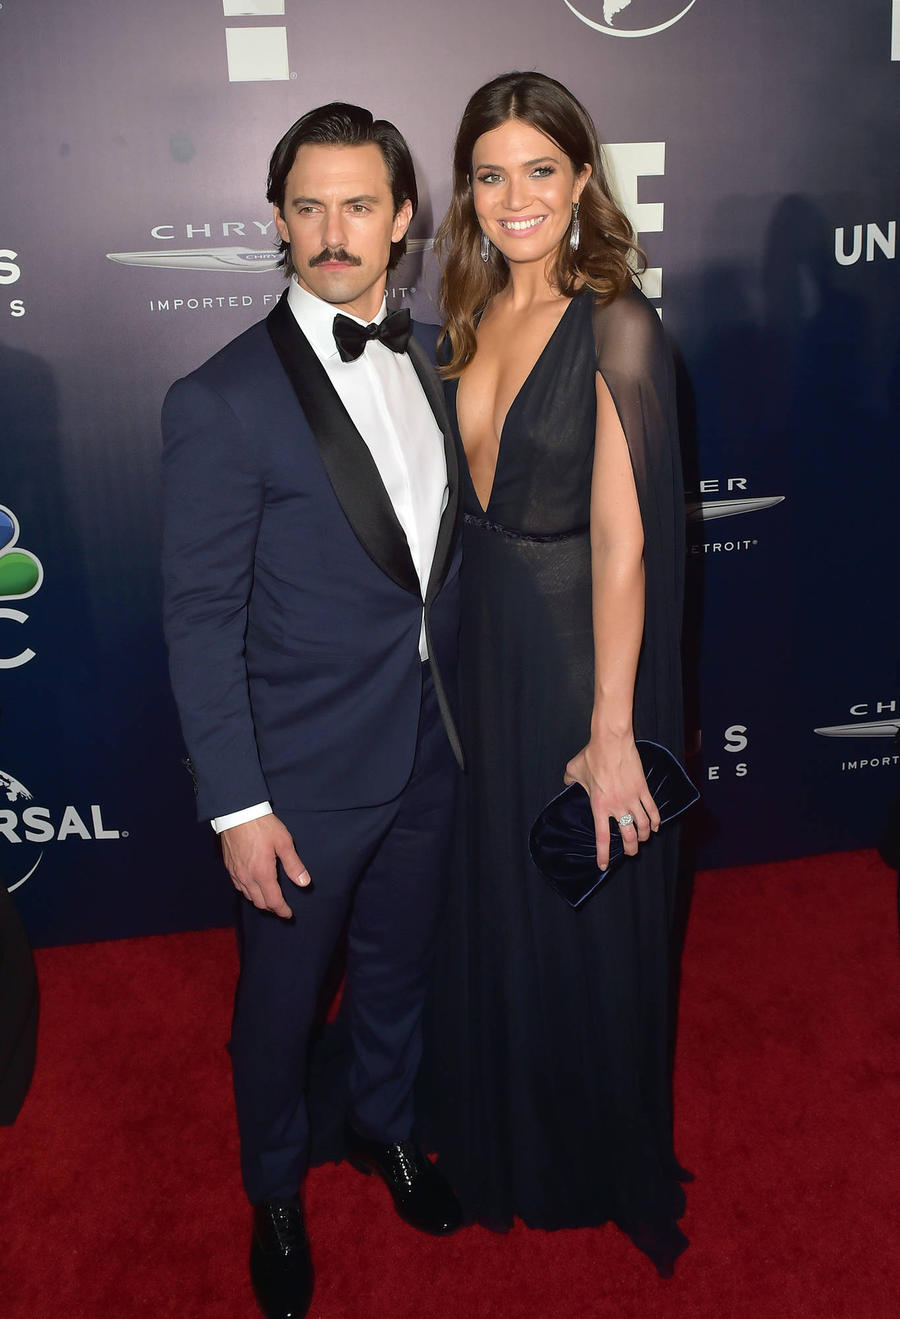 Mandy Moore And Milo Ventimiglia Respond To This Is Us Finale Criticism